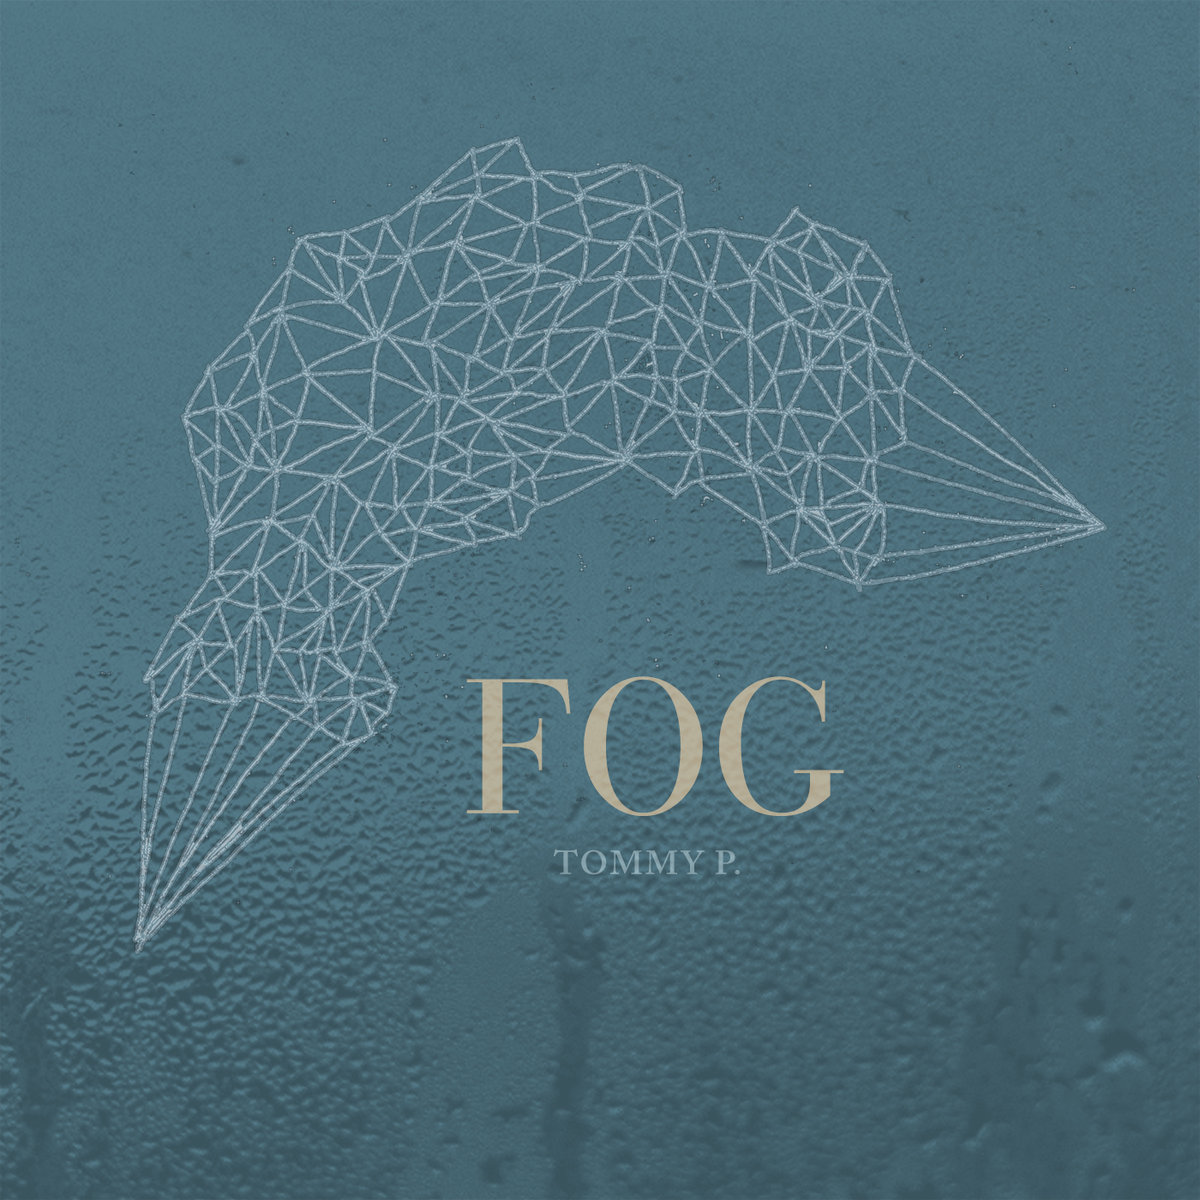 Tommy P. - How Did We Go Bad @ 'Fog' album (11th ave records, 11thaverecords 11th avenue)